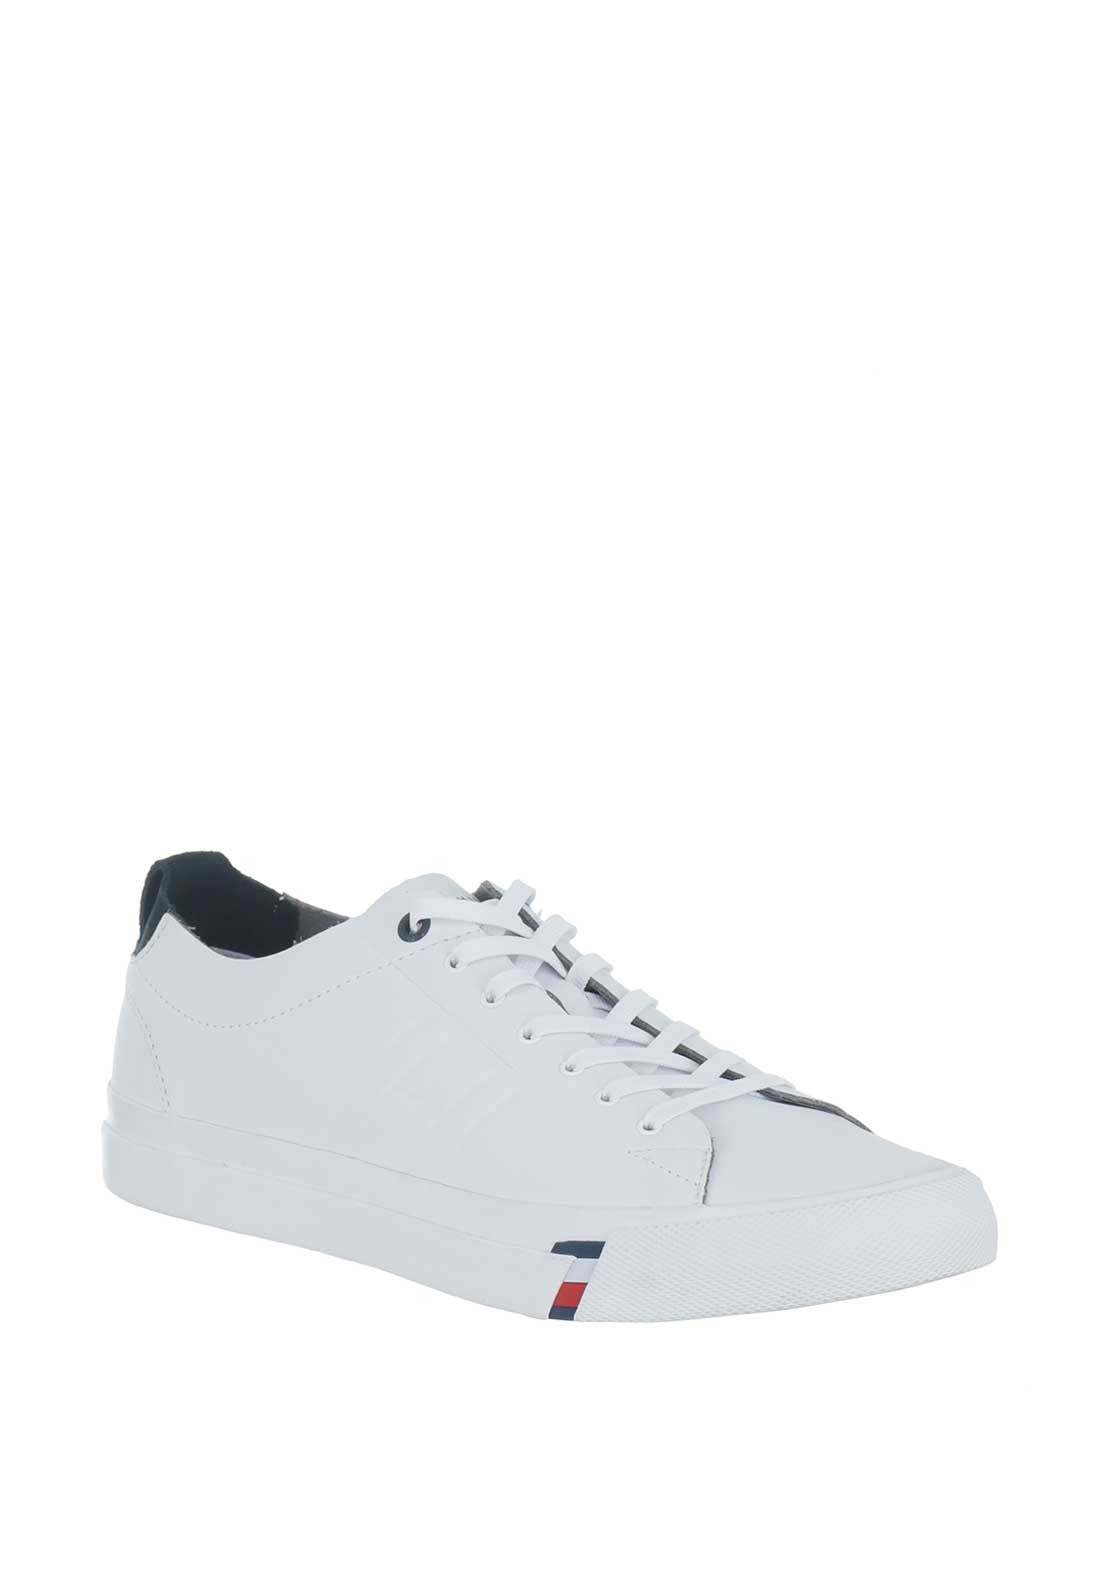 7f834675a Tommy Hilfiger Men s Leather Trainers